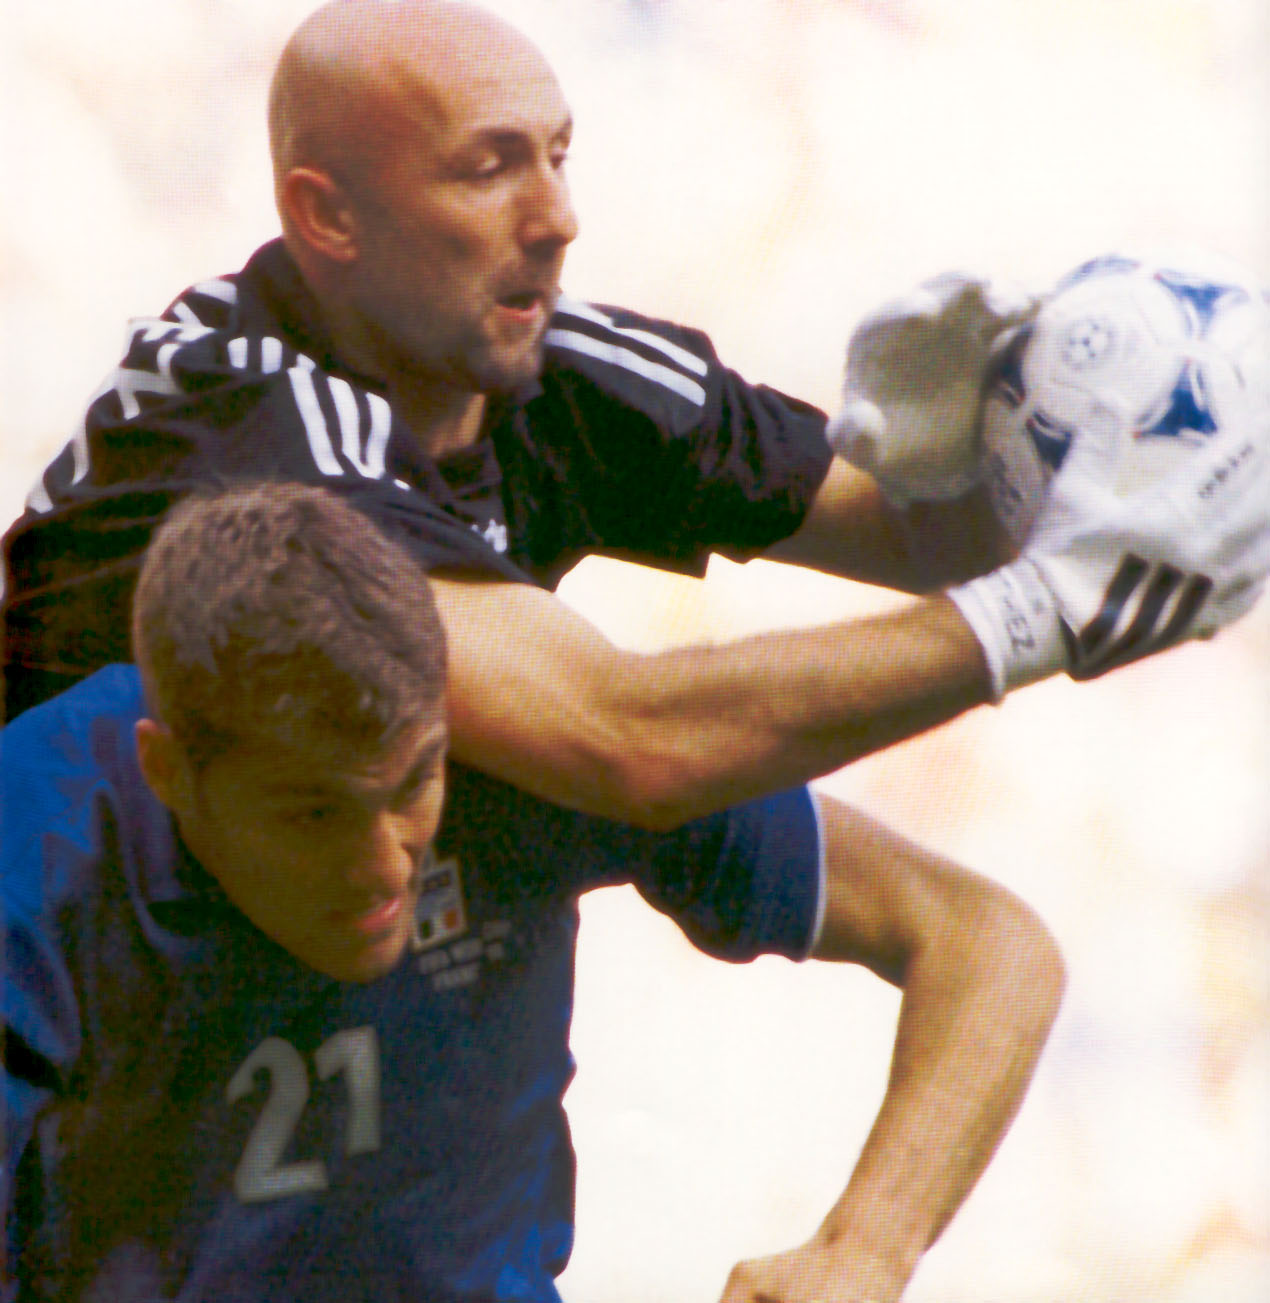 barthez mains